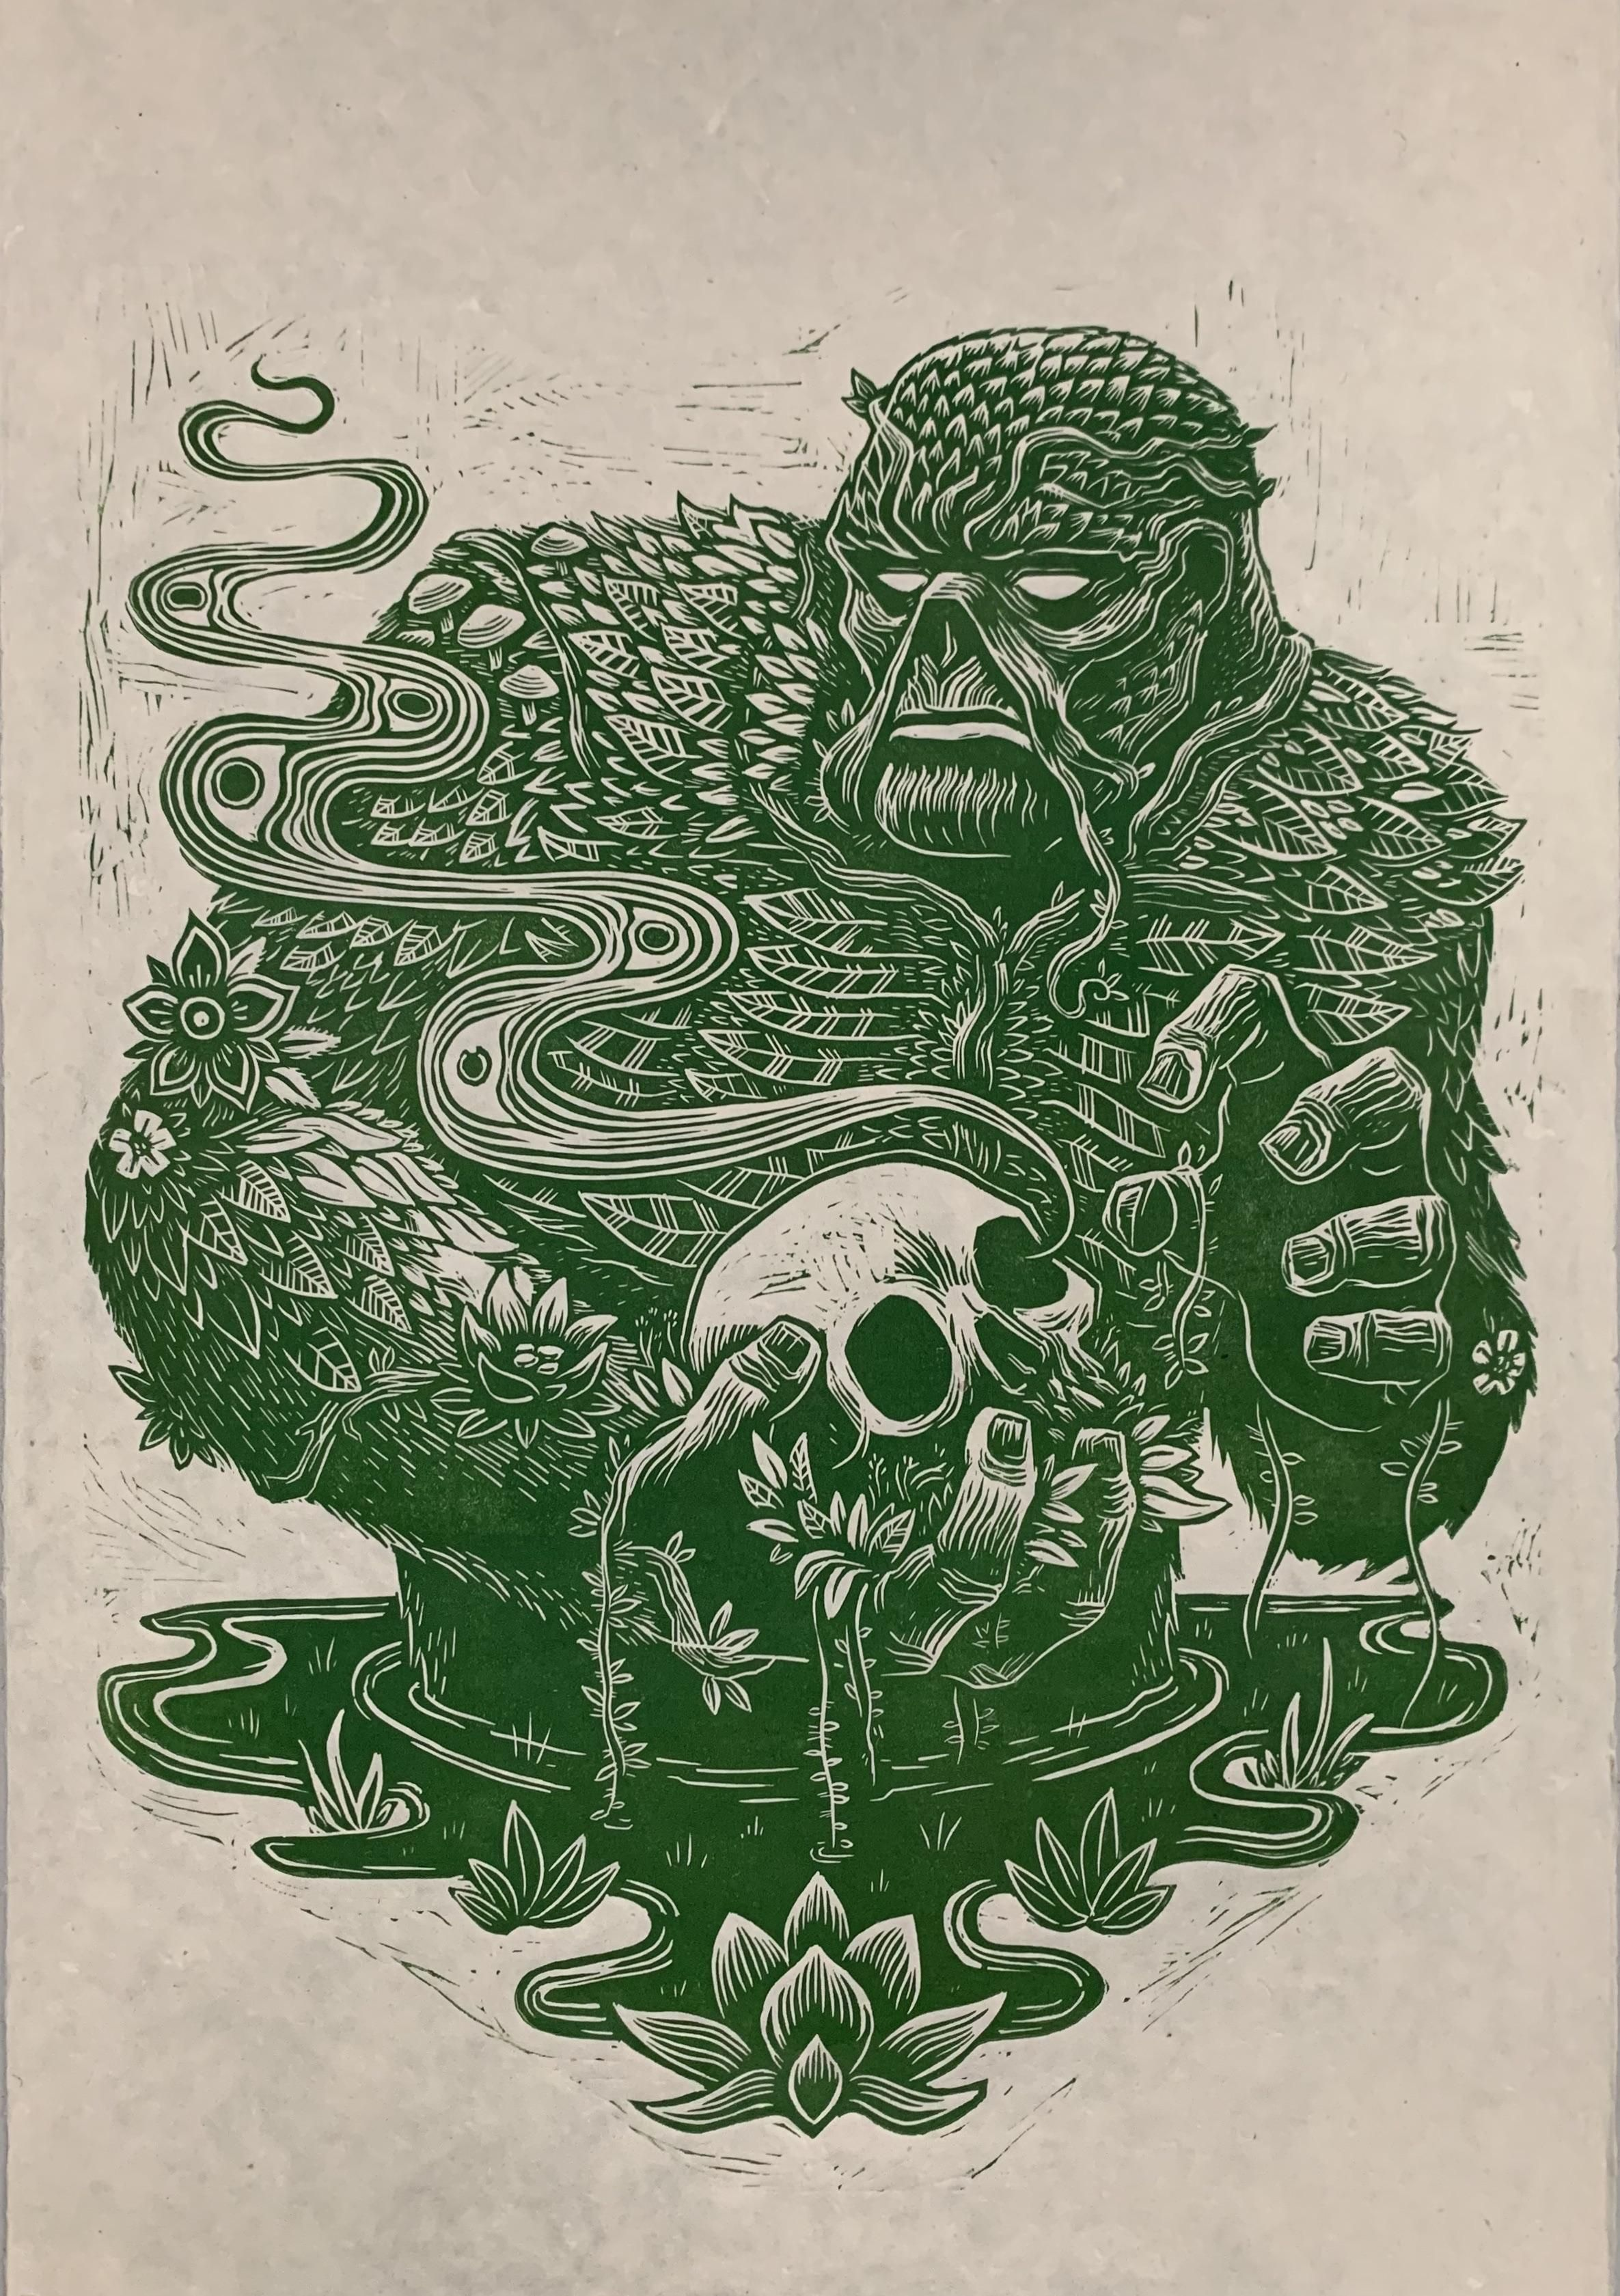 Hey everyone! Im new to the group! I made this Swamp Thing linoleum block print. Its 30 x 20 on hand made paper. Hope you guys dig it! #swampthing